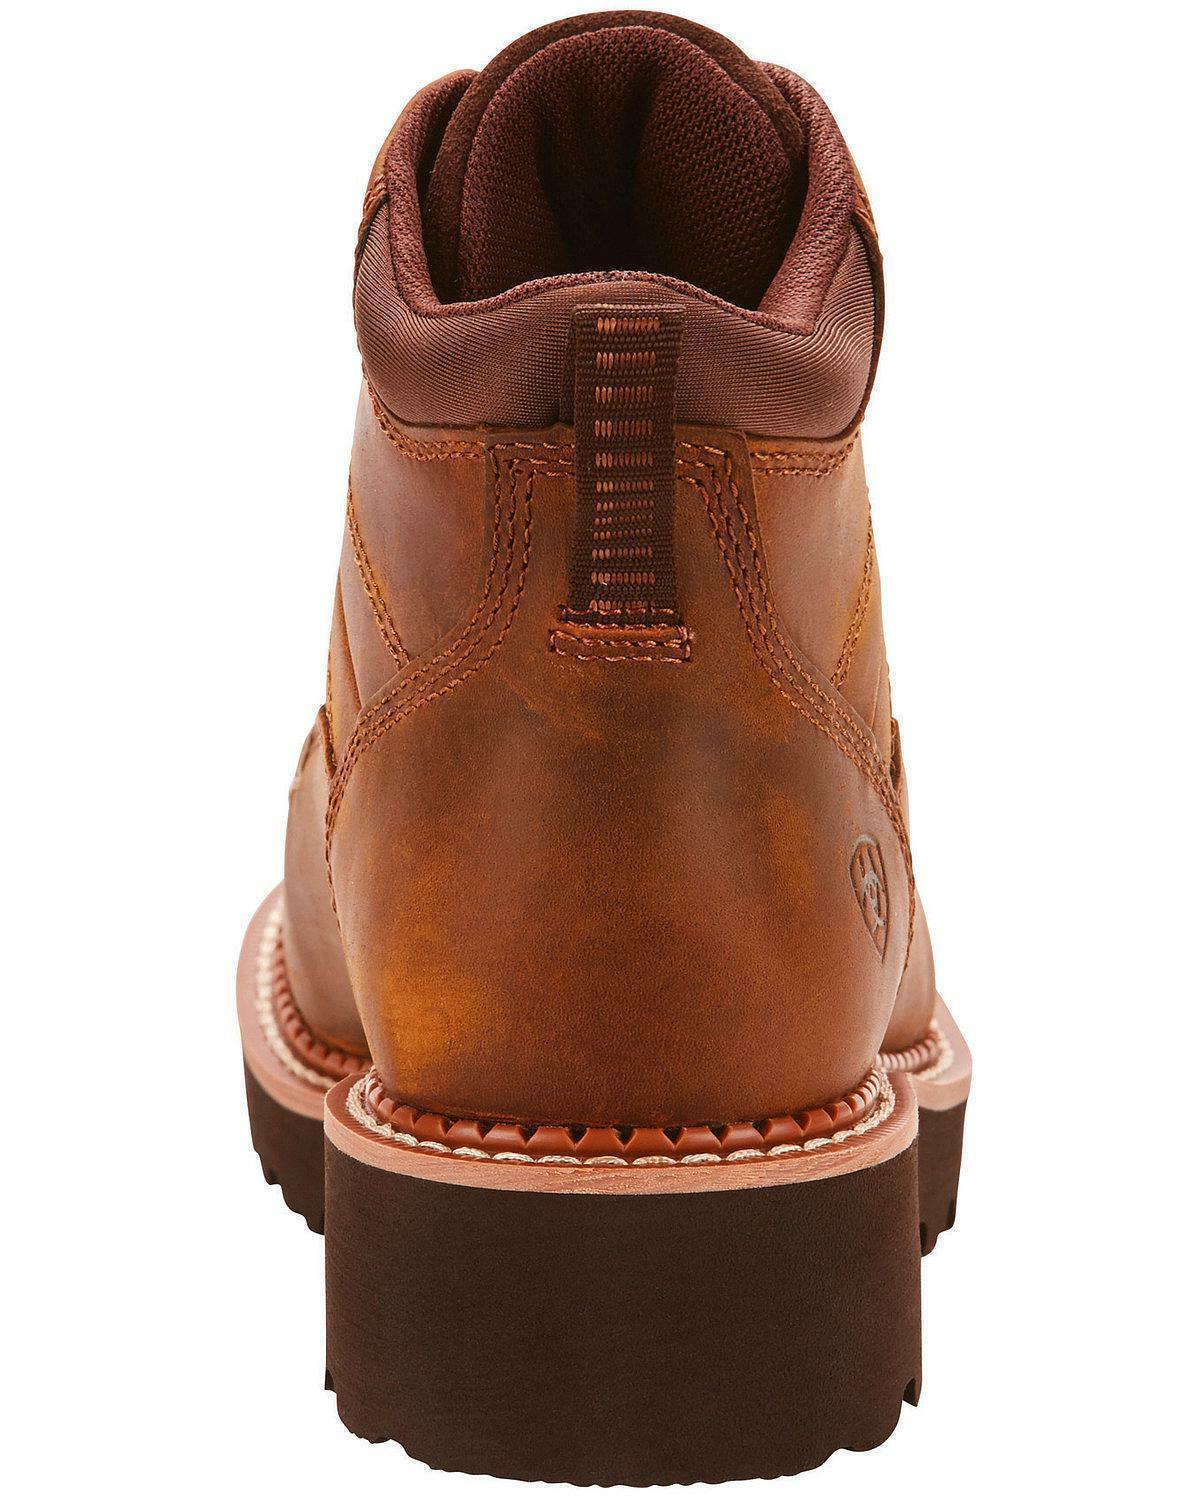 Ariat Brown II Boots Round Toe 10025016